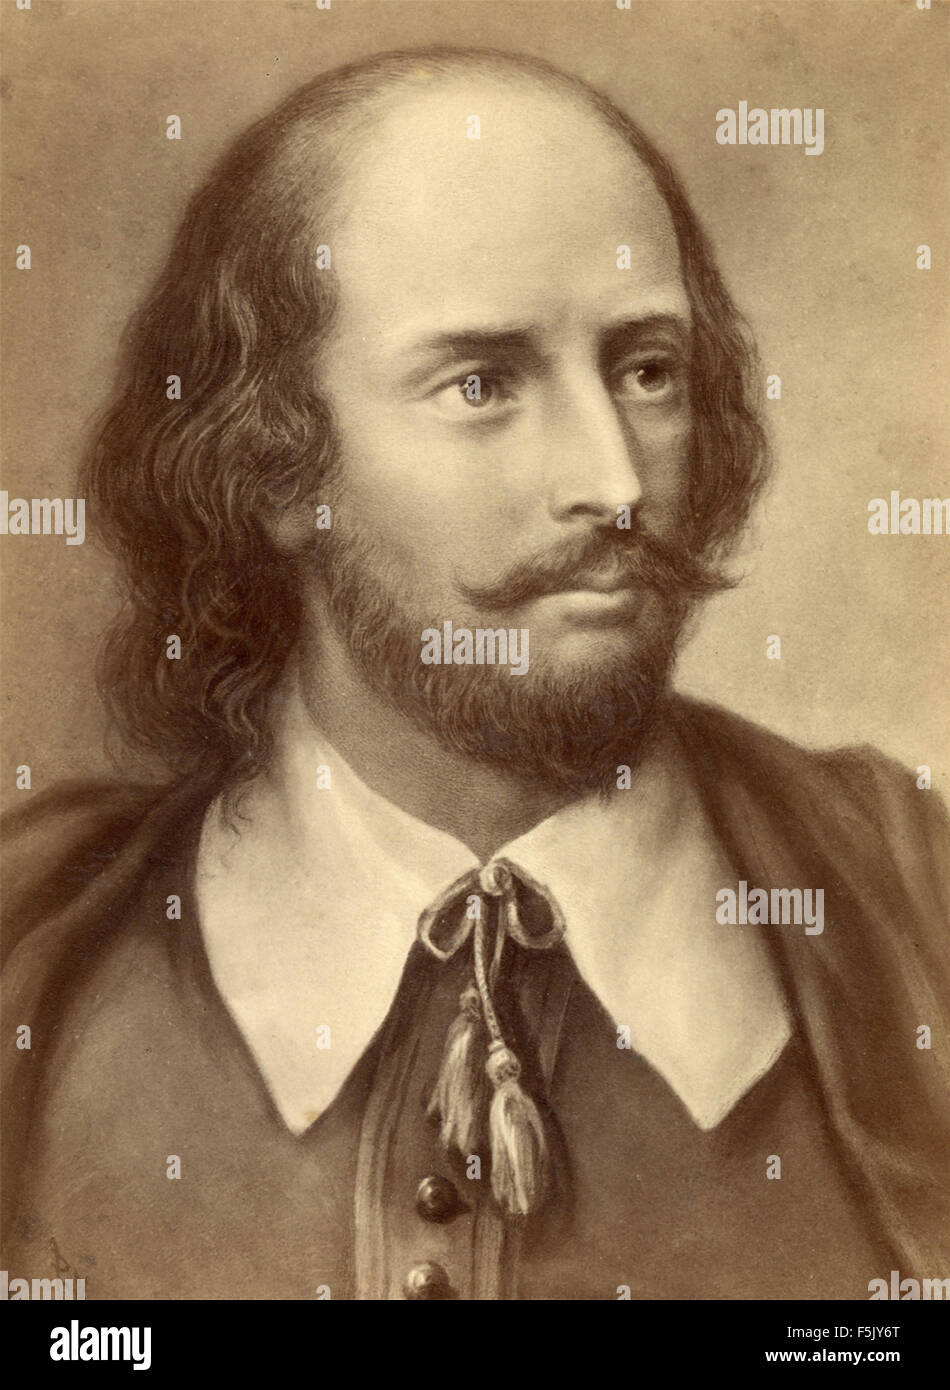 William Shakespeare Portrait Painting Stockfotos & William ...